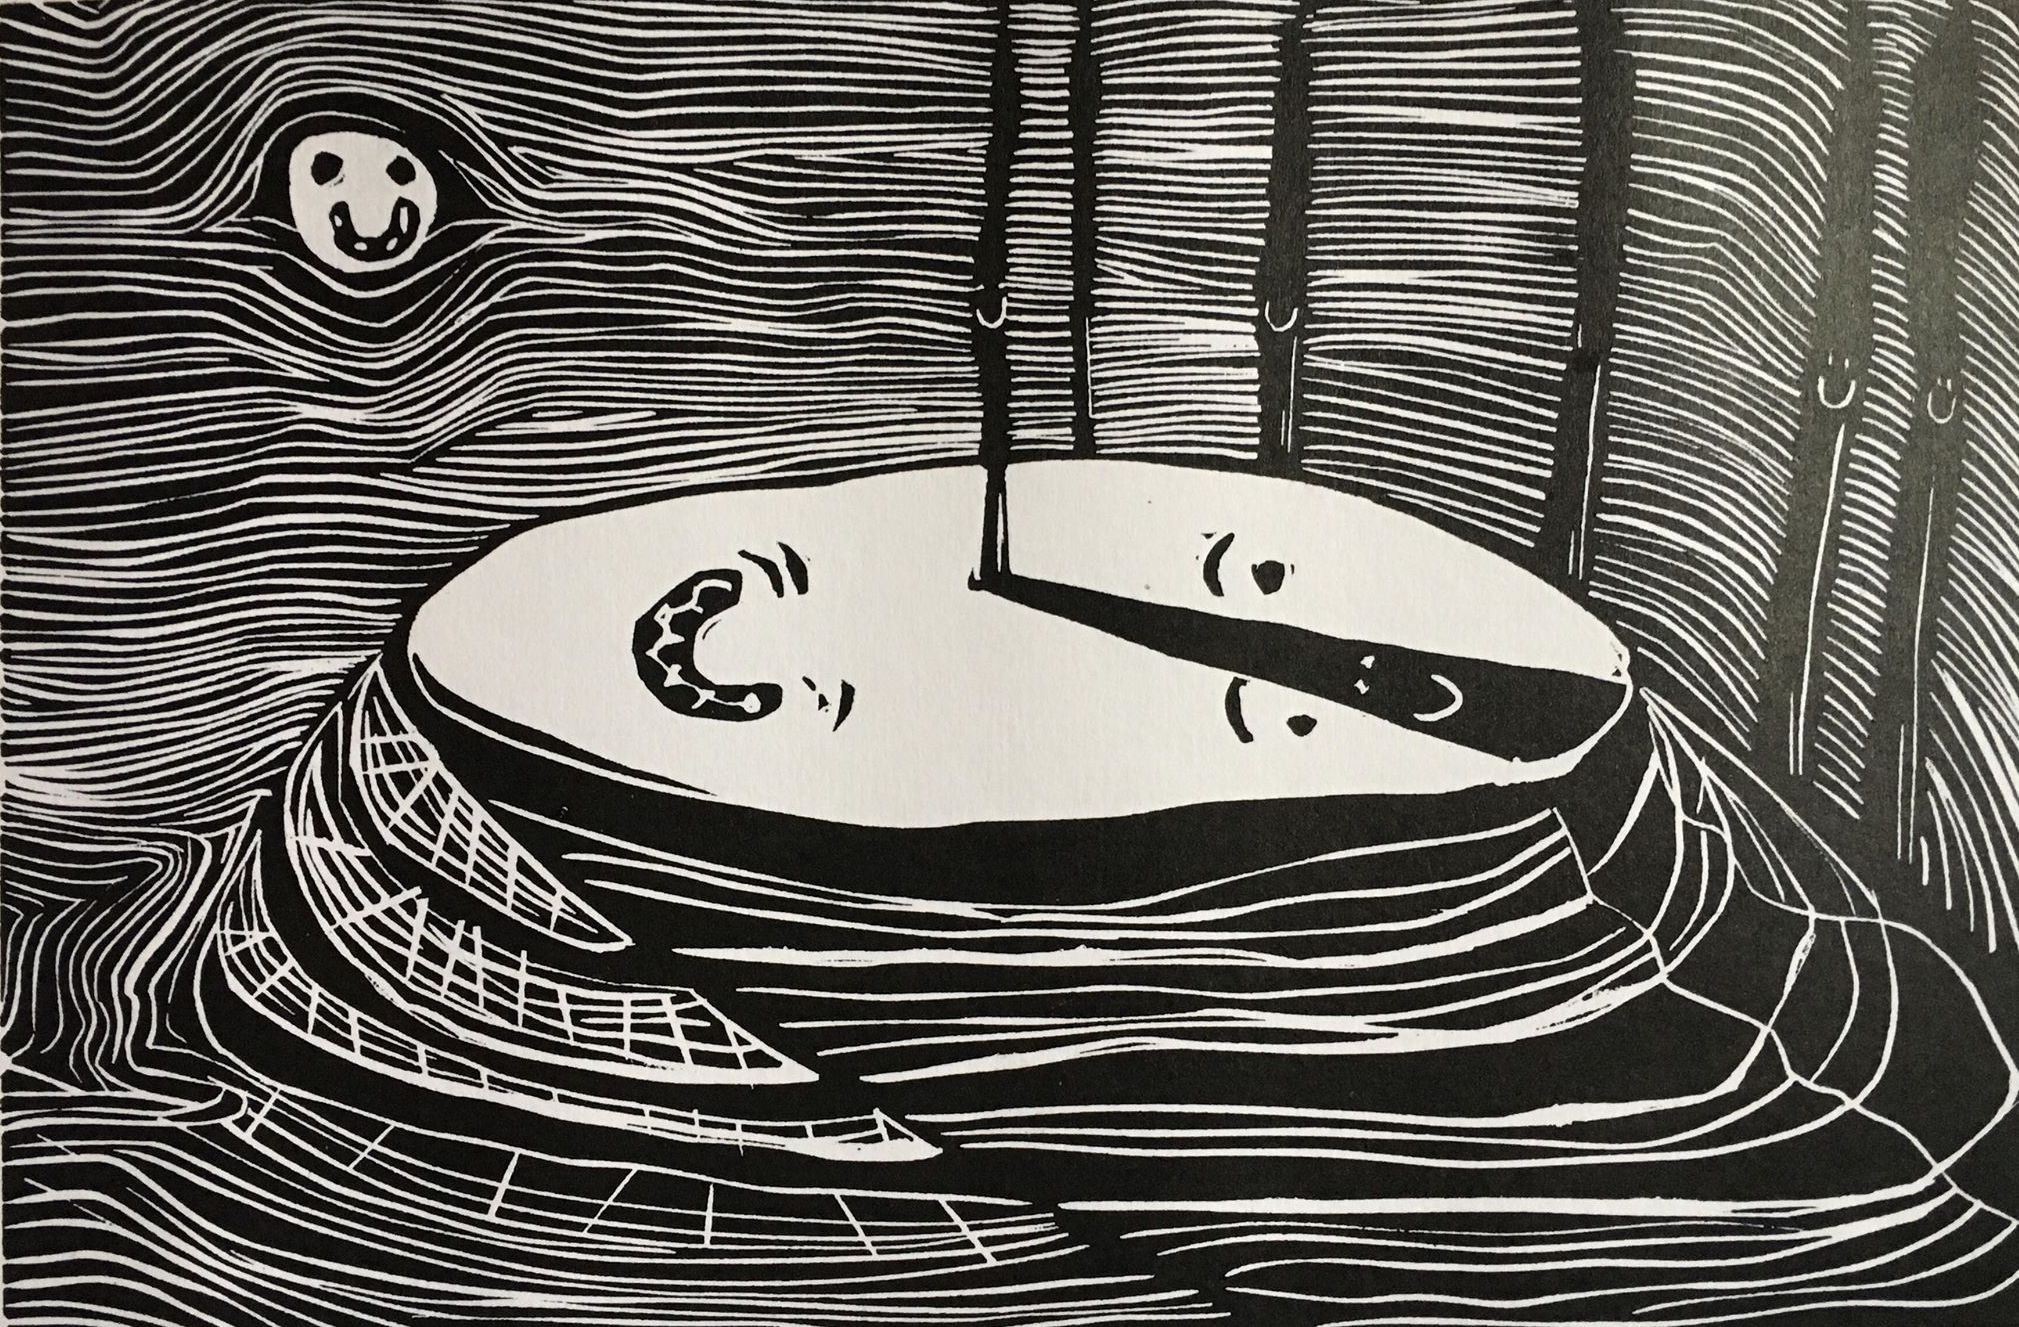 """<span class=""""link fancybox-details-link""""><a href=""""/exhibitions/17/works/image_standalone766/"""">View Detail Page</a></span><p><strong>Kristina Nabažaitė</strong></p><p>Smiling Mountain</p><p>linocut, ed of 15</p><p>24 x 16cm paper size</p><p>£45 framed</p><p>£40 unframed</p><p></p>"""